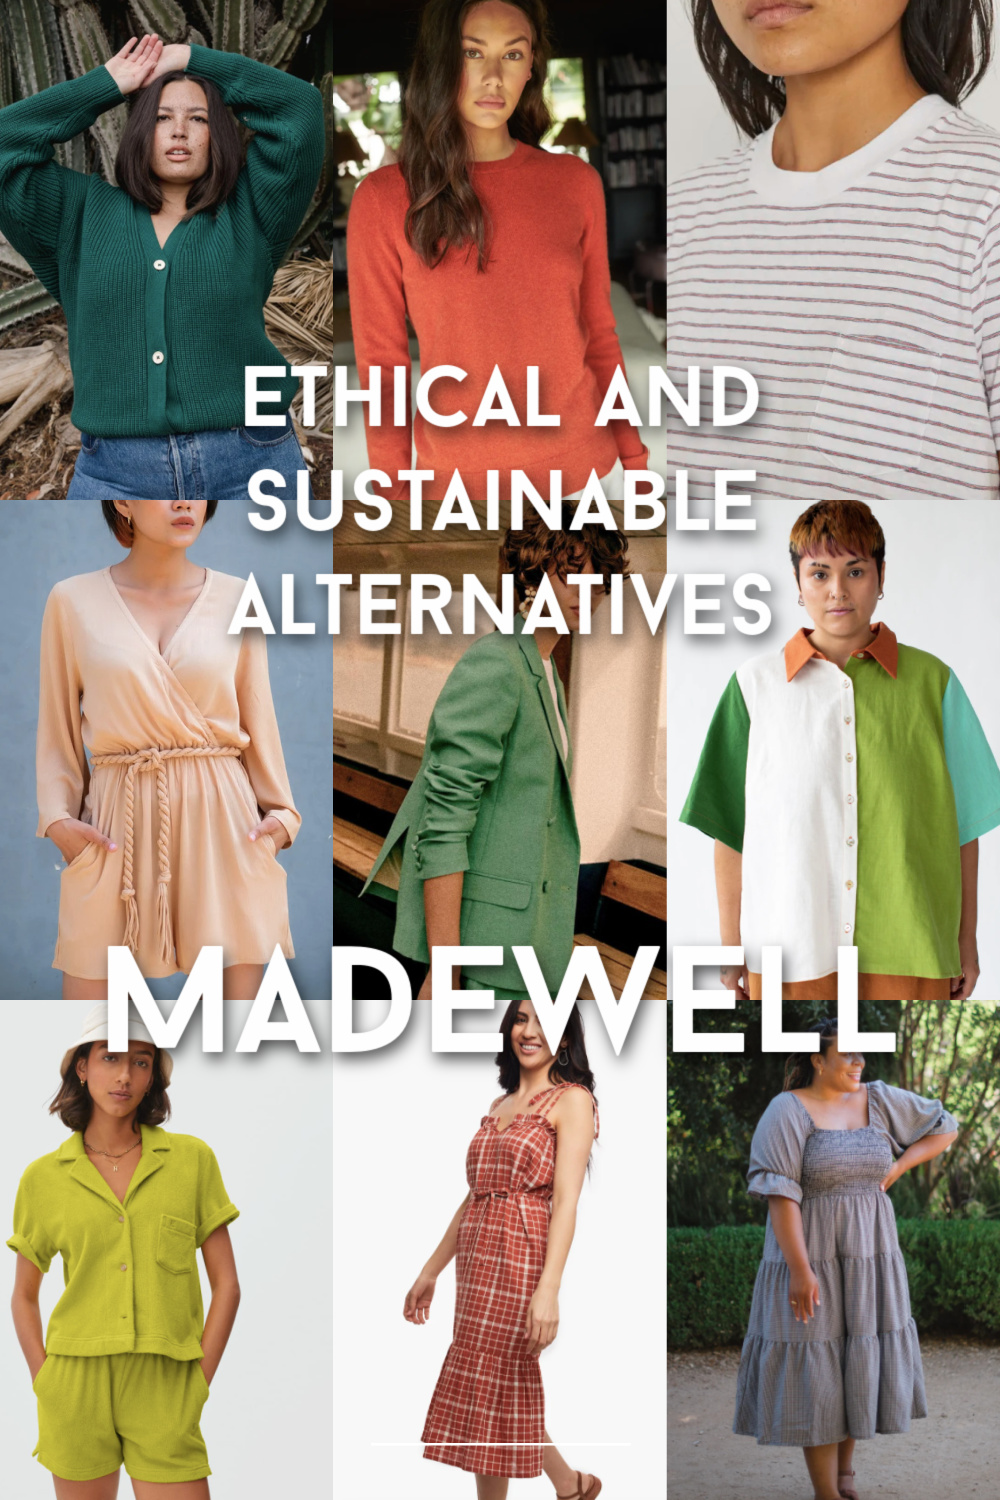 Ethical and sustainable alternatives to Madewell